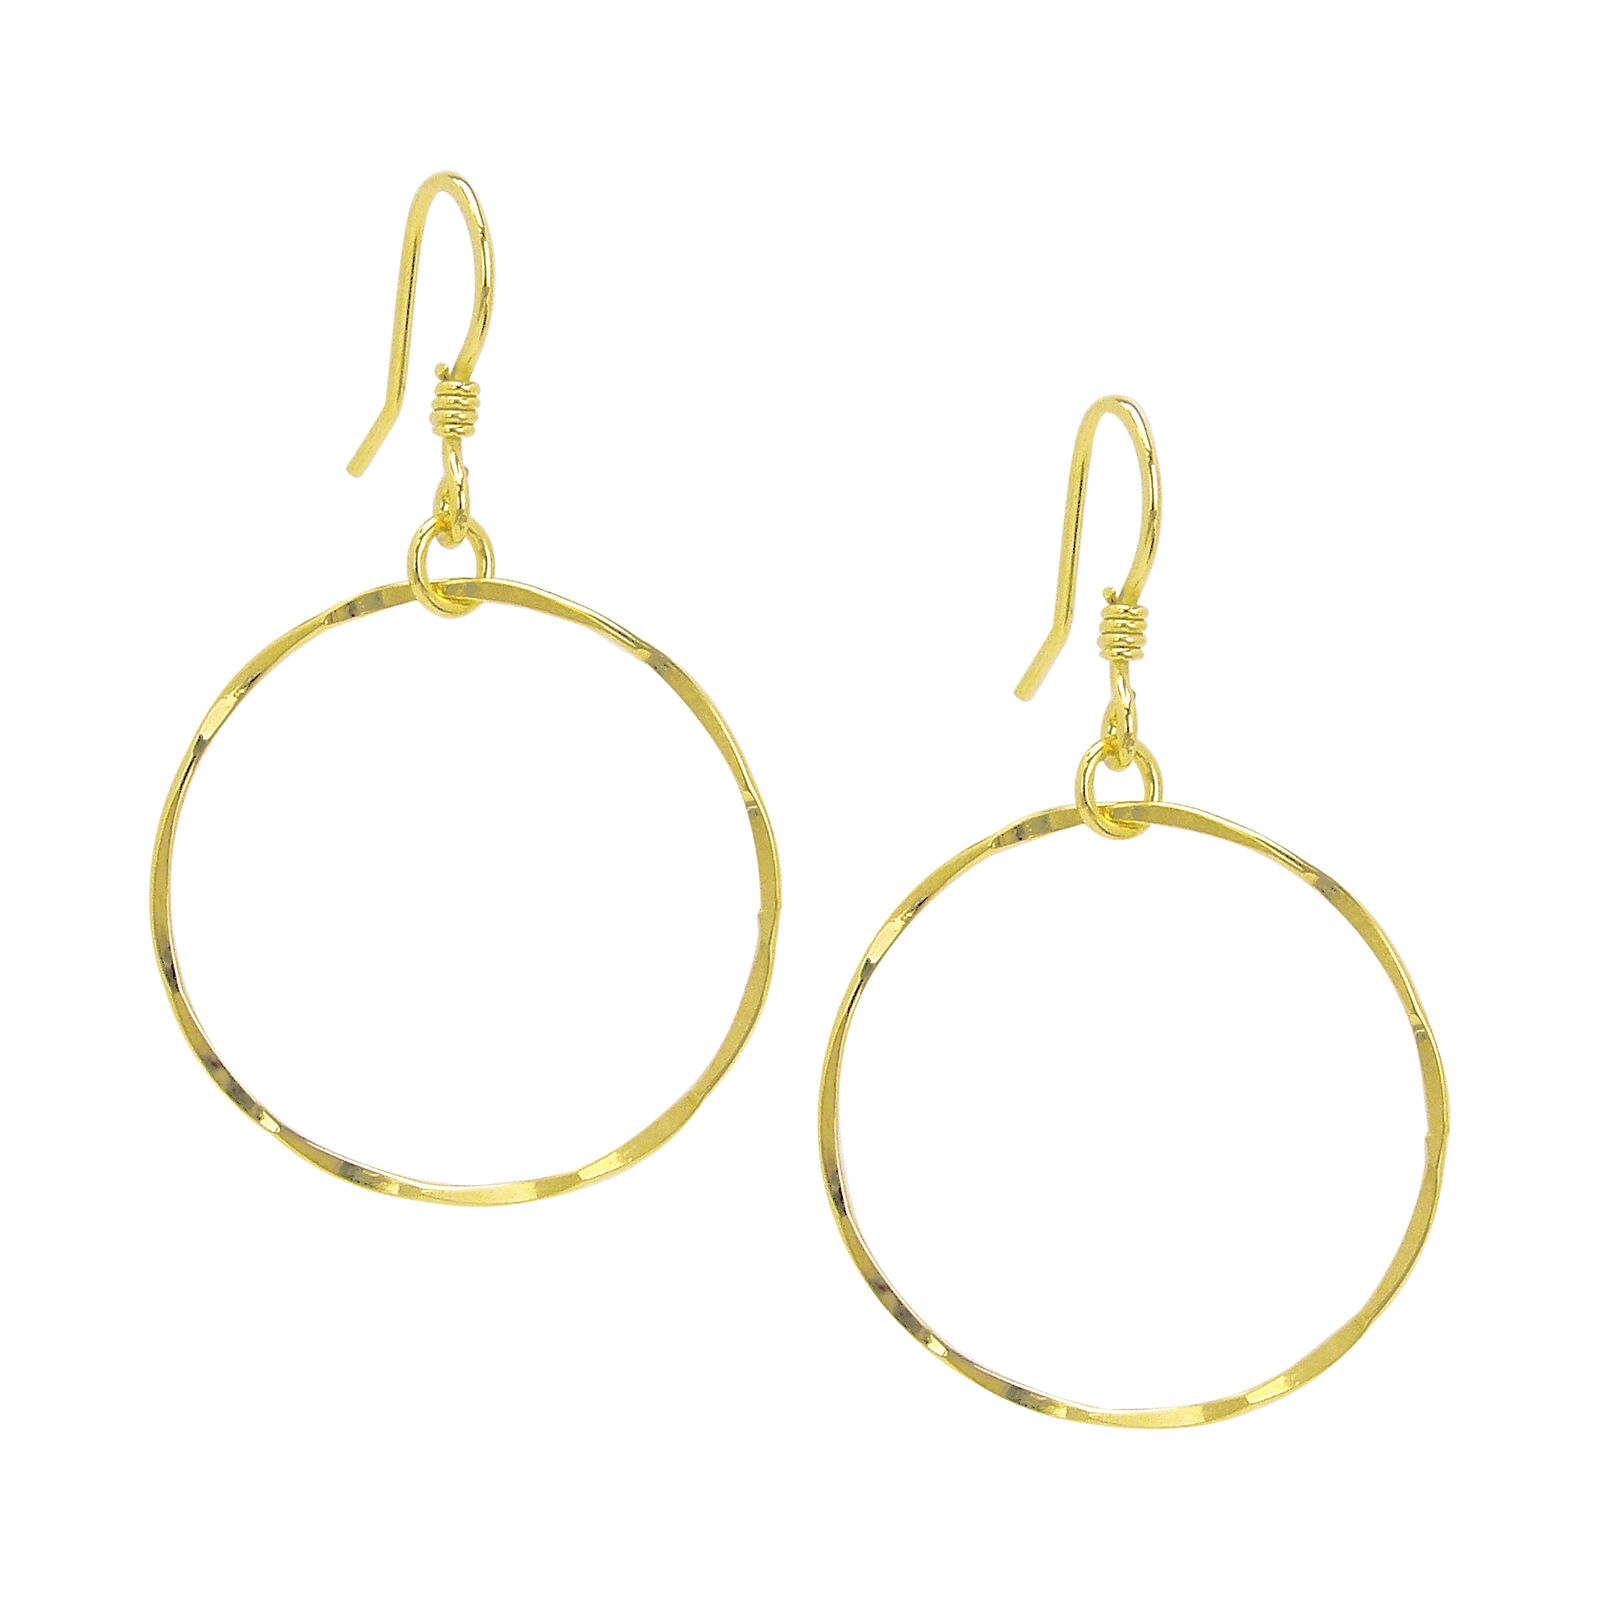 Charlene K Front Facing Hoop Earrings in gold Vermeil